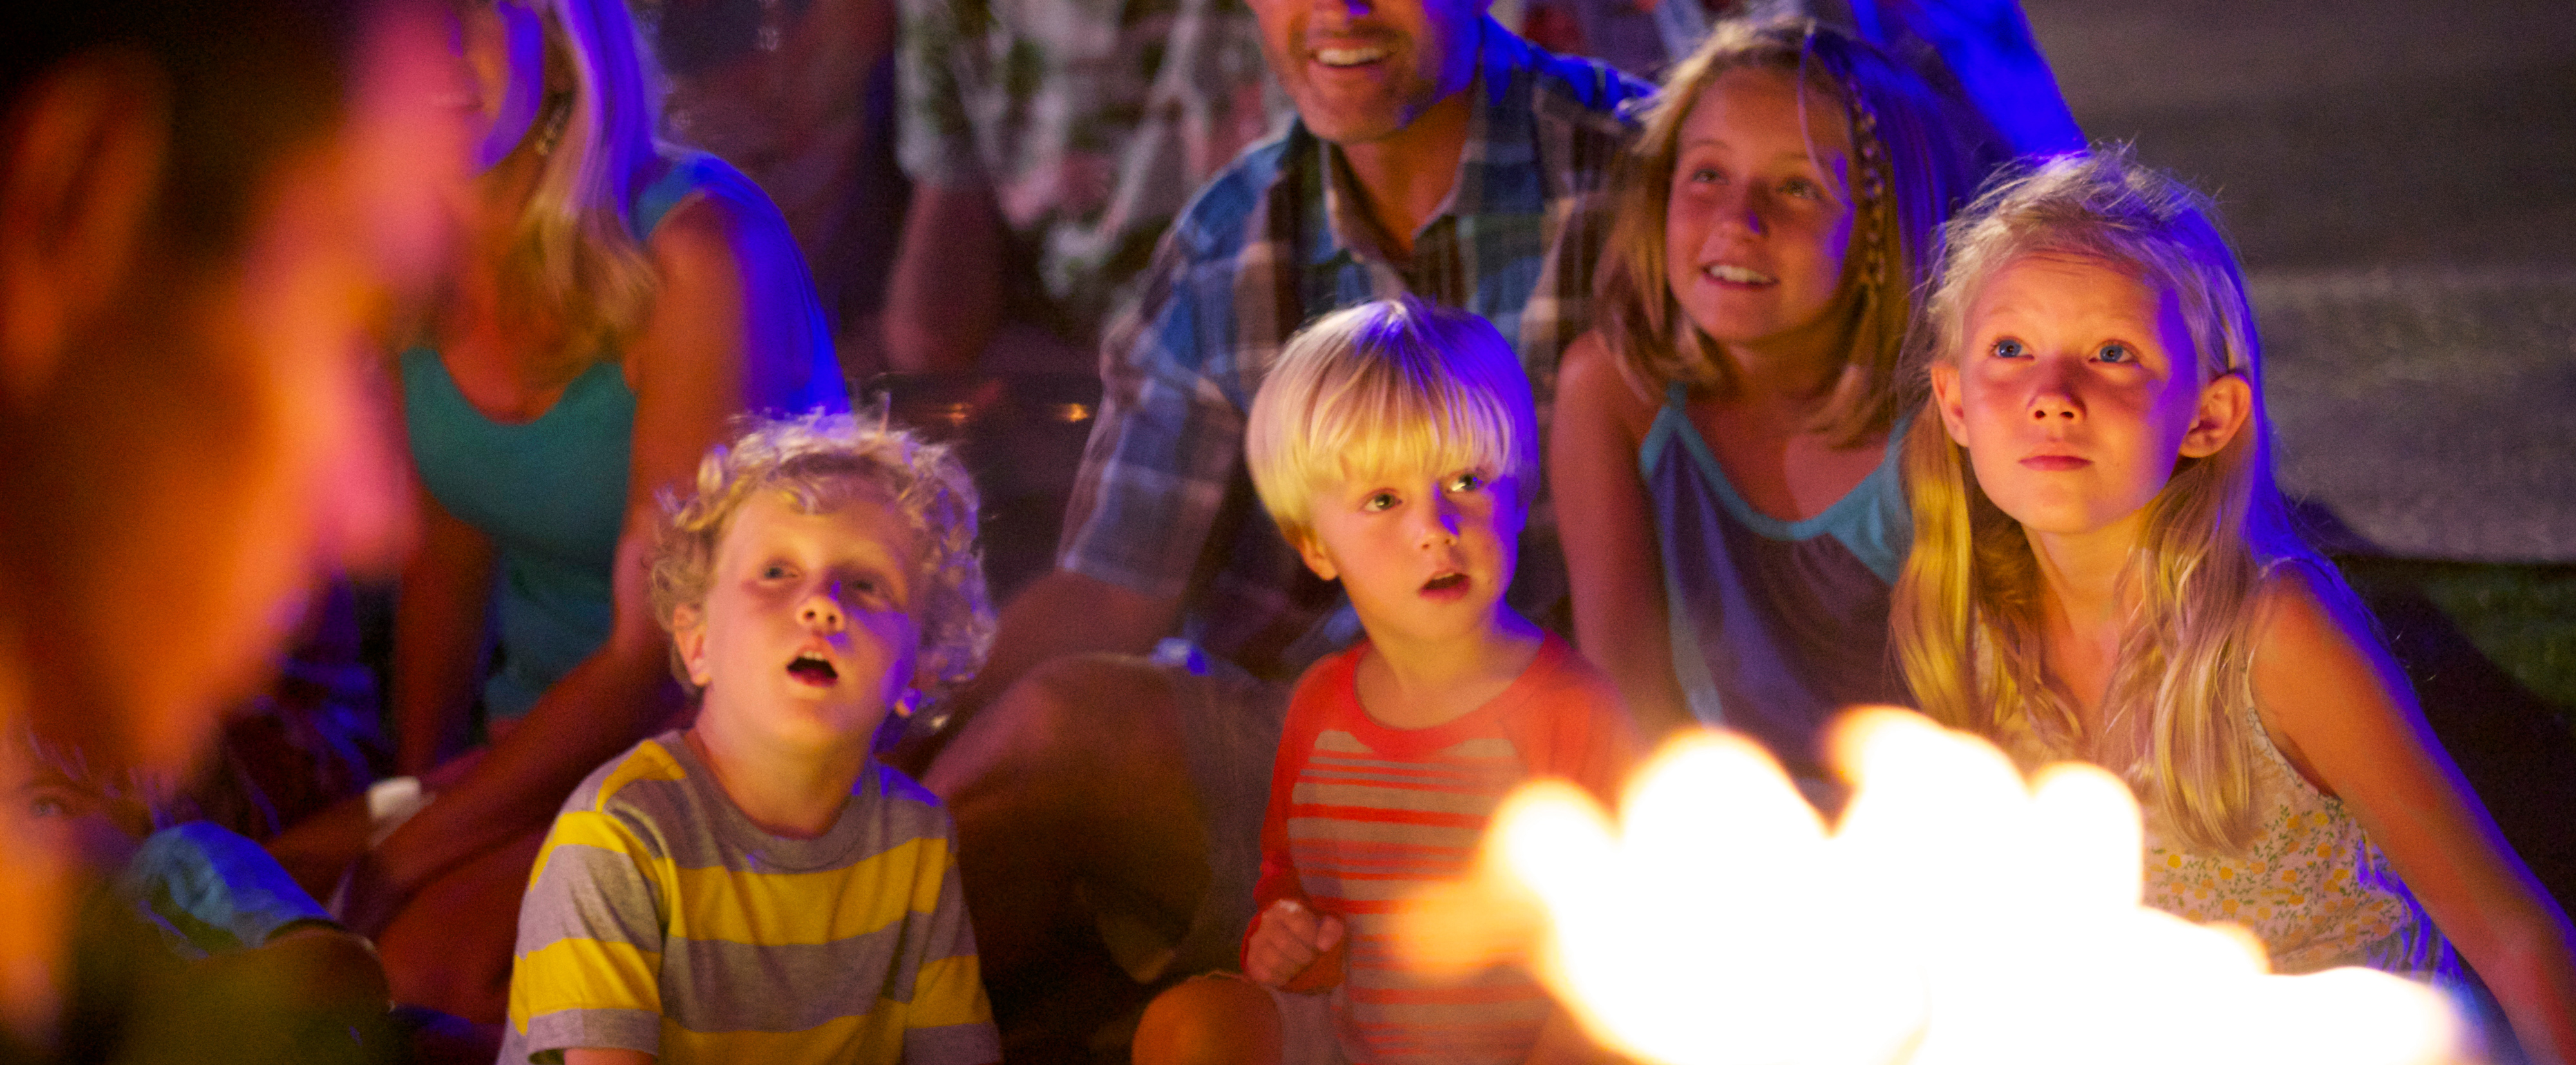 Two small boys and 2 girls watch transfixed as a man hovers near a large flame